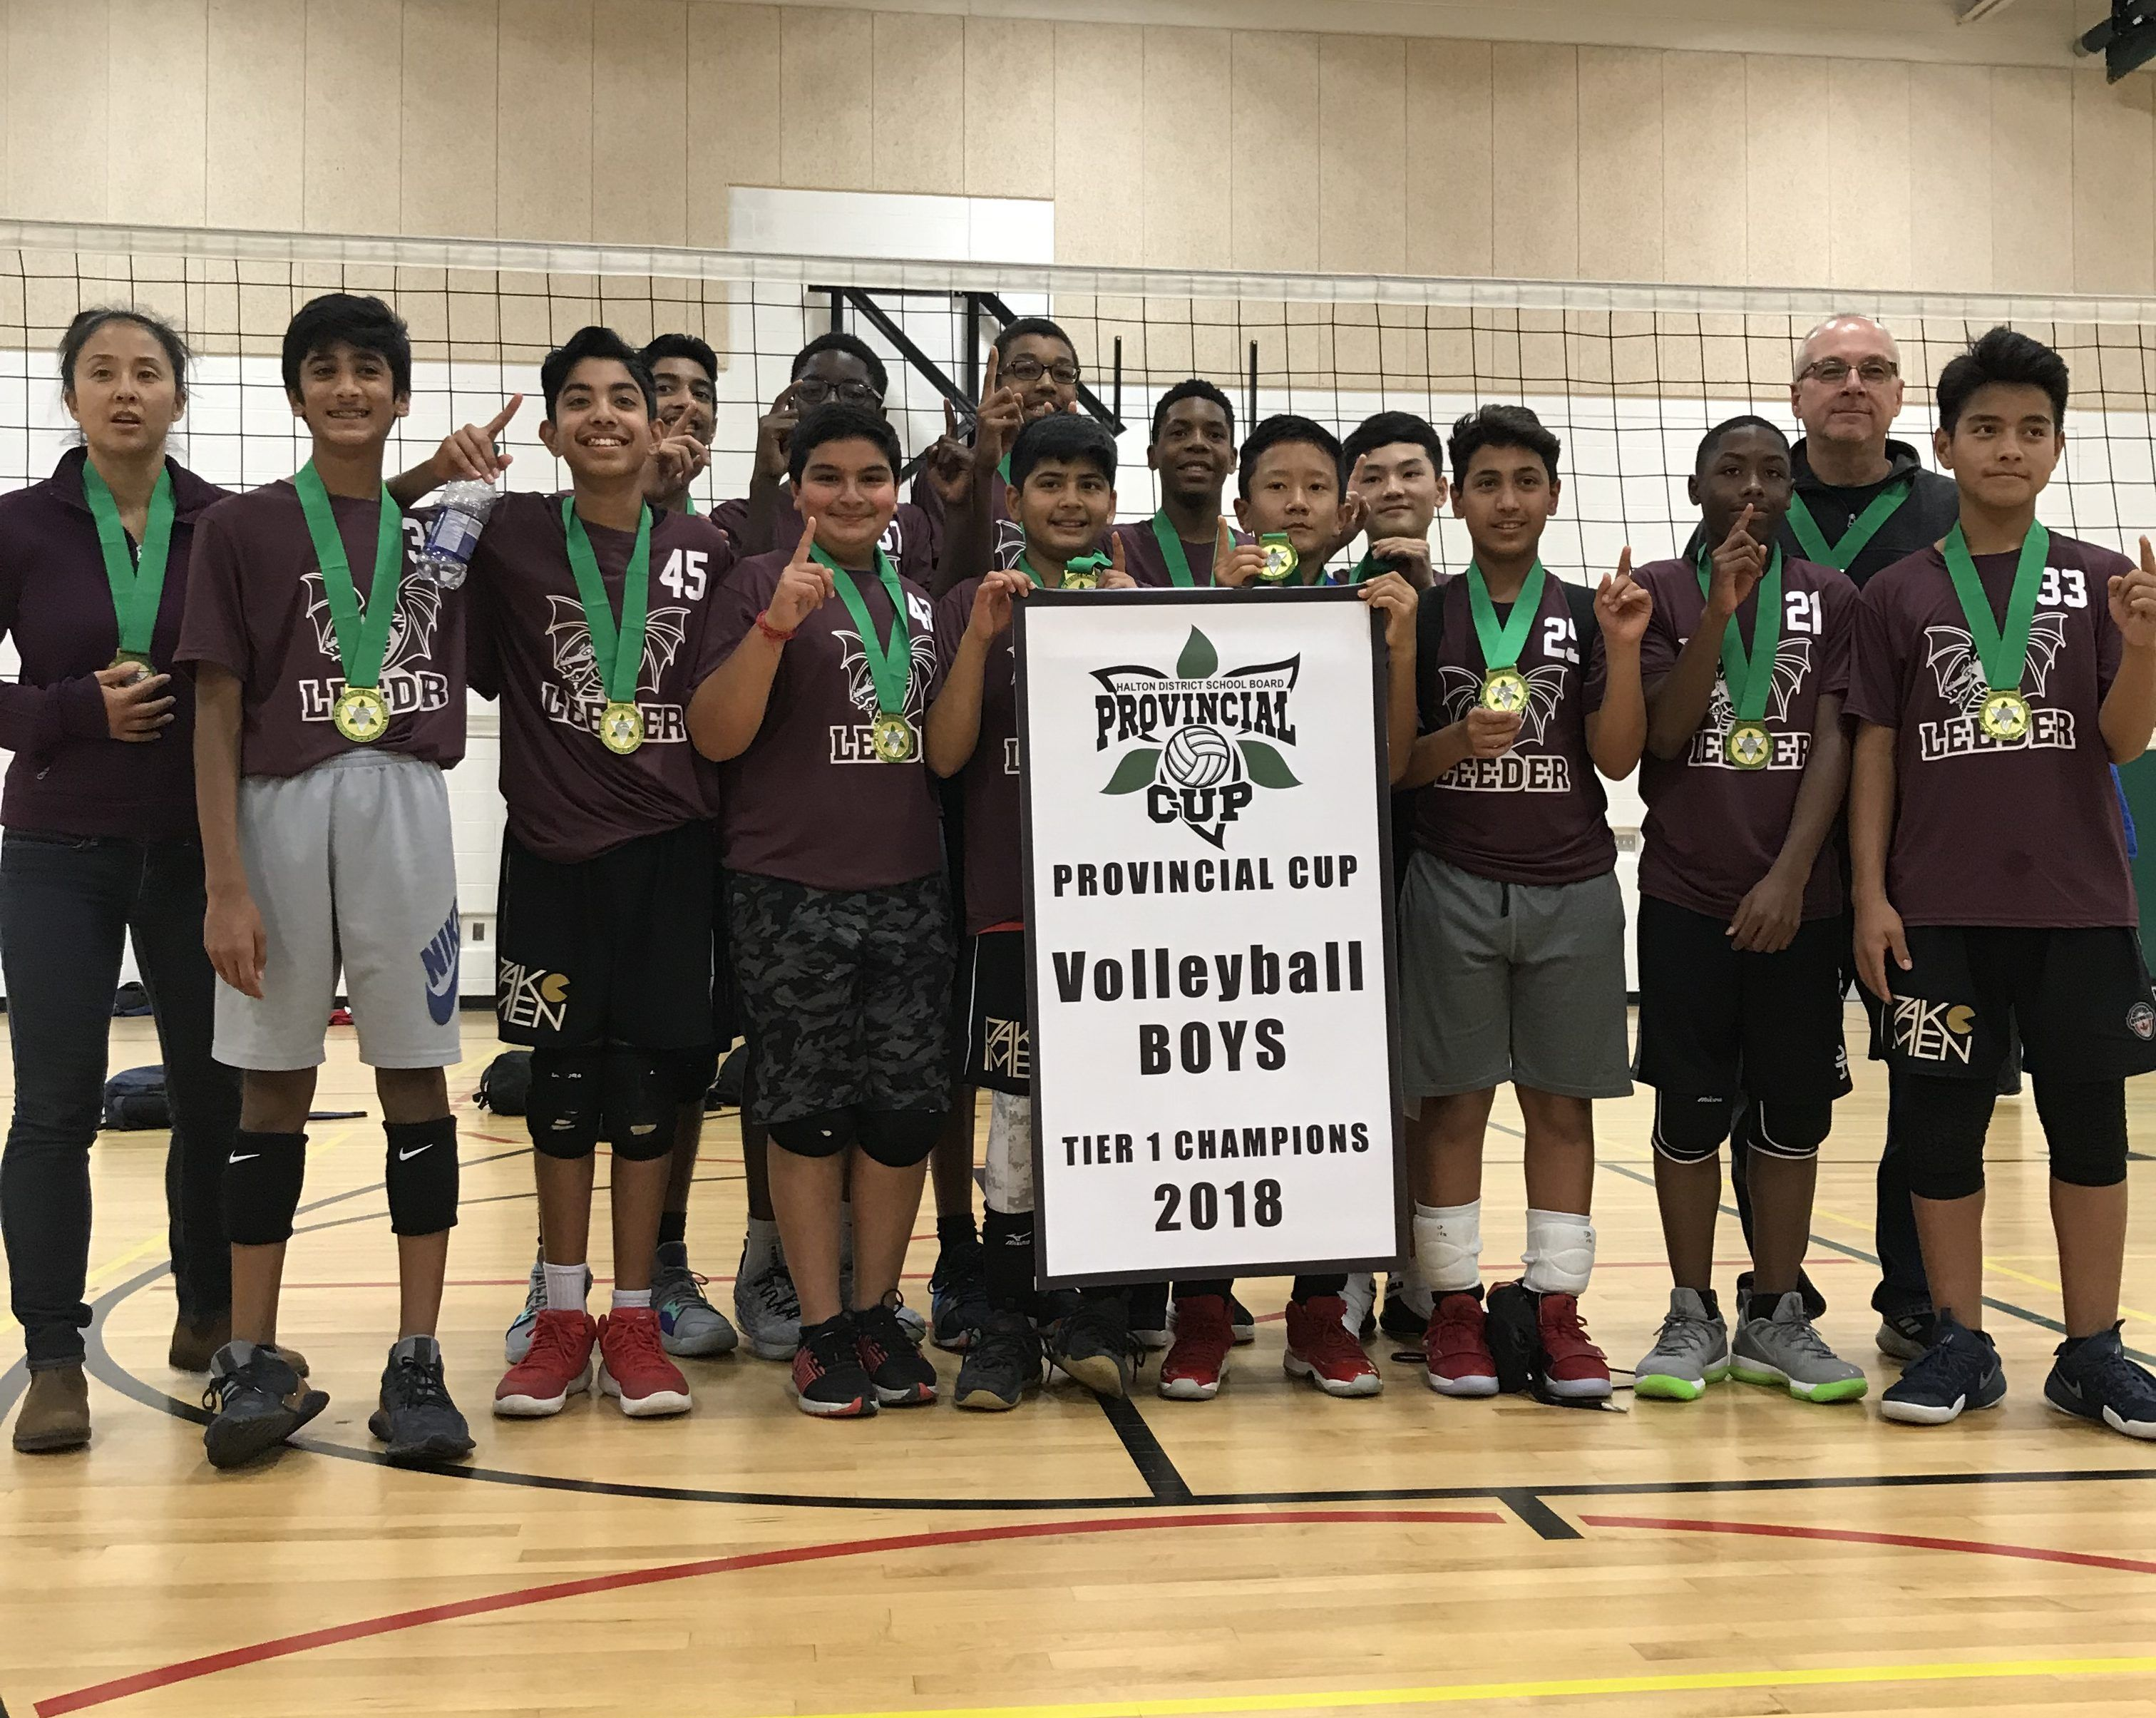 Mississauga School wins Provincial Middle School Volleyball Title